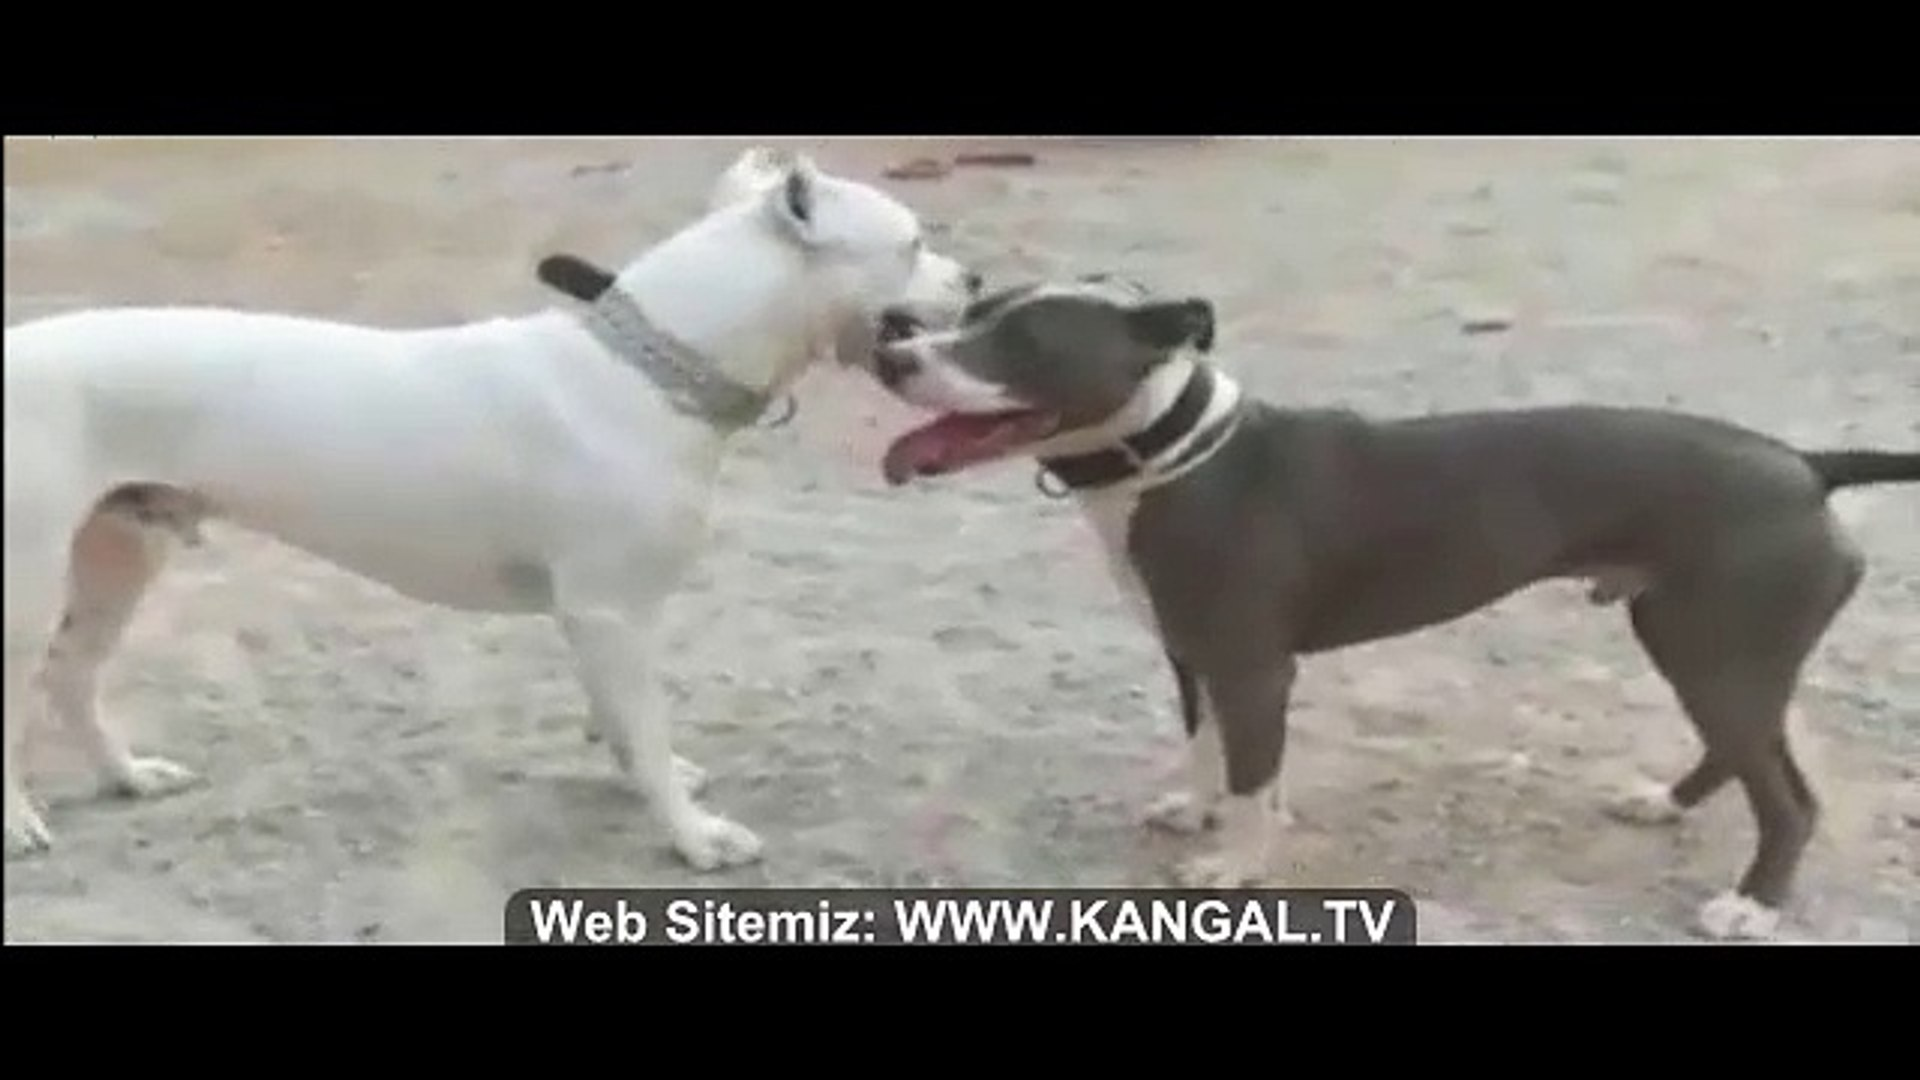 DOGO ARGENTiNO vs PiTBULL TERRiER